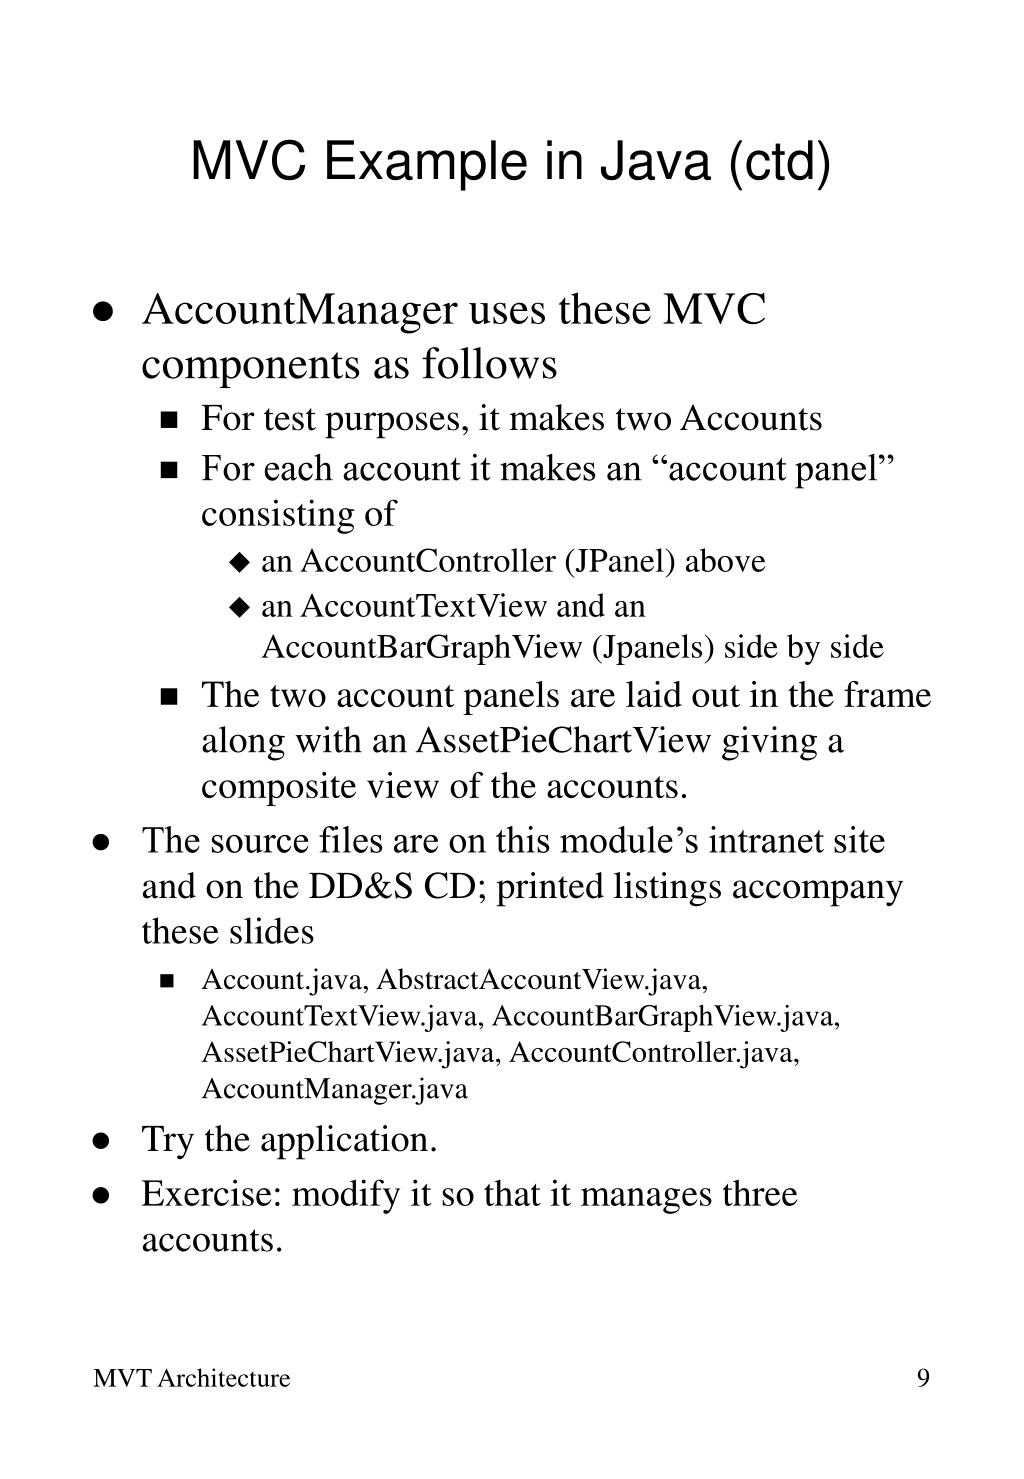 MVC Example in Java (ctd)